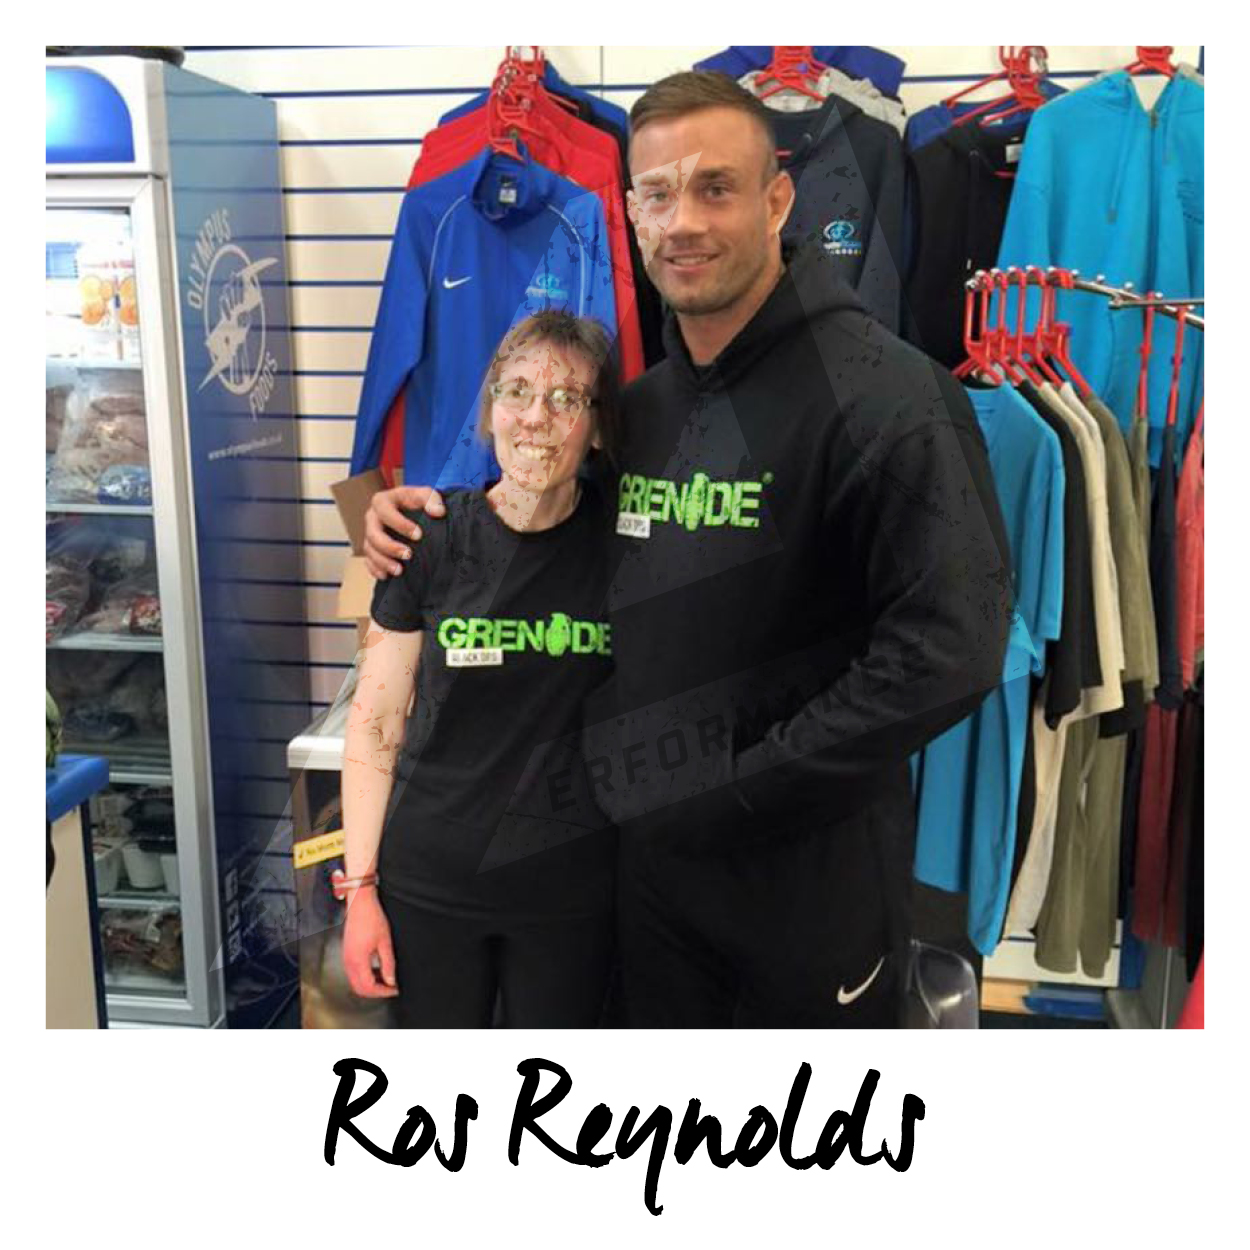 I'd like to introduce my most inspirational client and friend, Ros. Ros has been through more in her lifetime than many people could ever imagine. Here she tells her story of overcoming her illnesses with fitness...